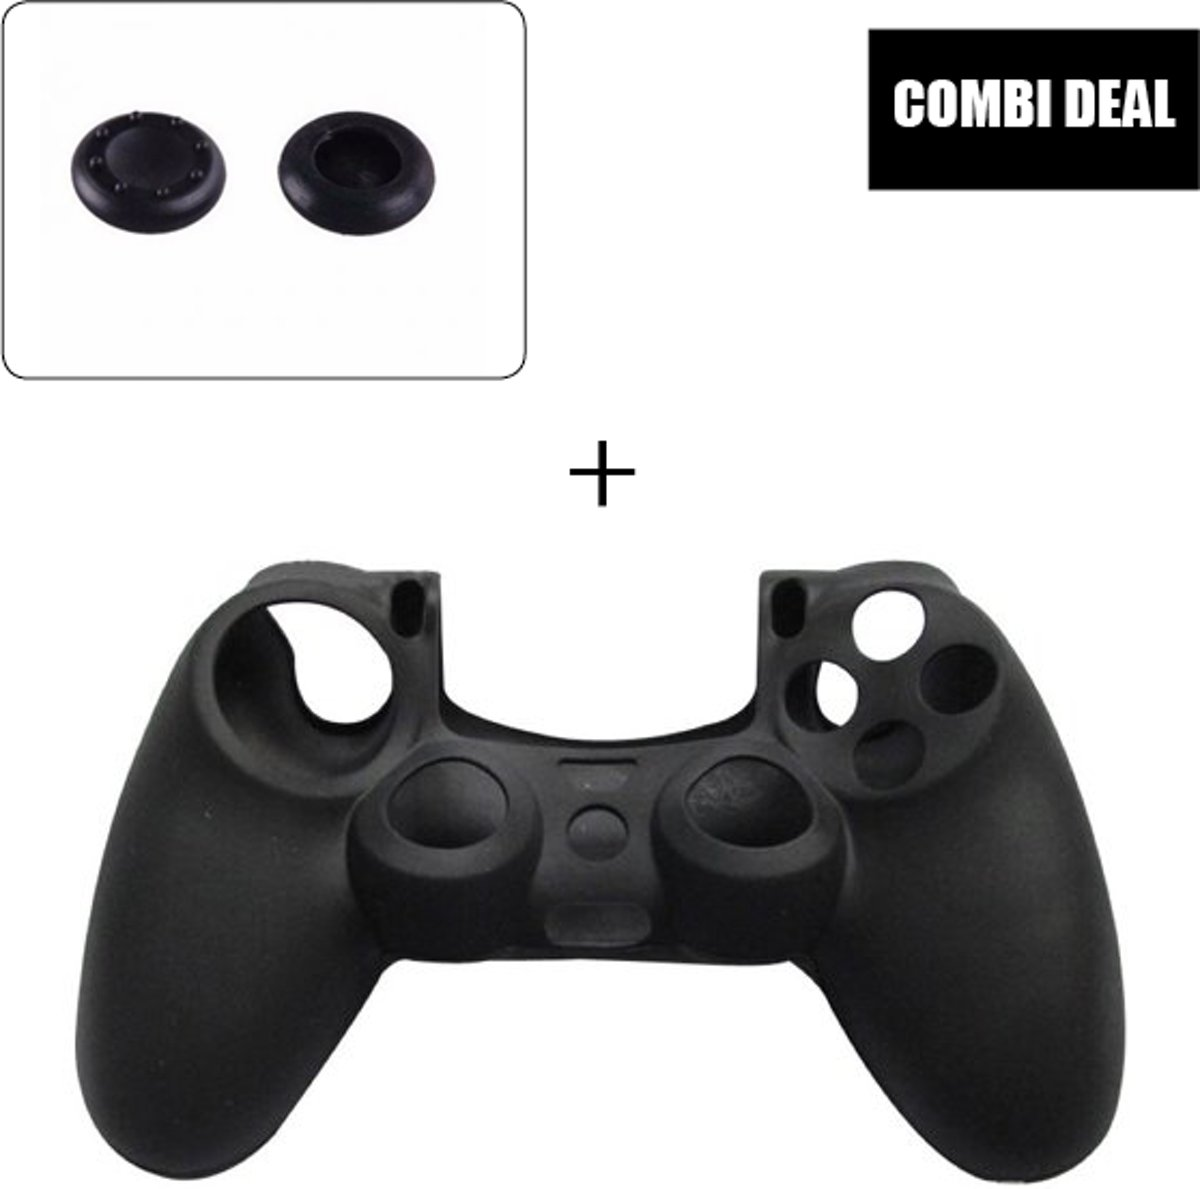 Silicone cover met thumb grips voor de PlayStation 4 controller - Antislip - Silicone controller skin - PS4 - Zwart